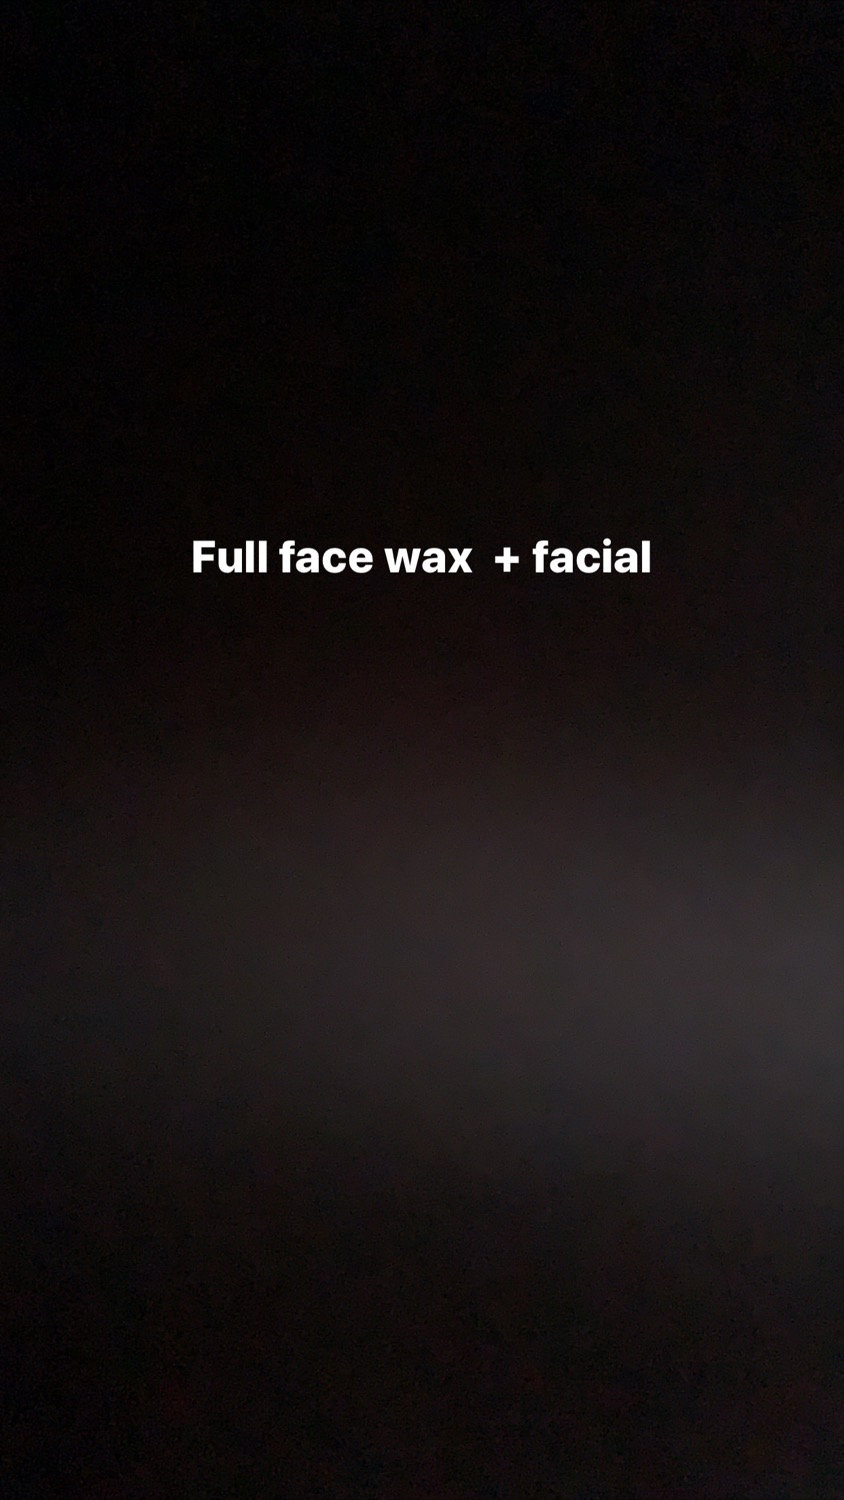 Total face wax